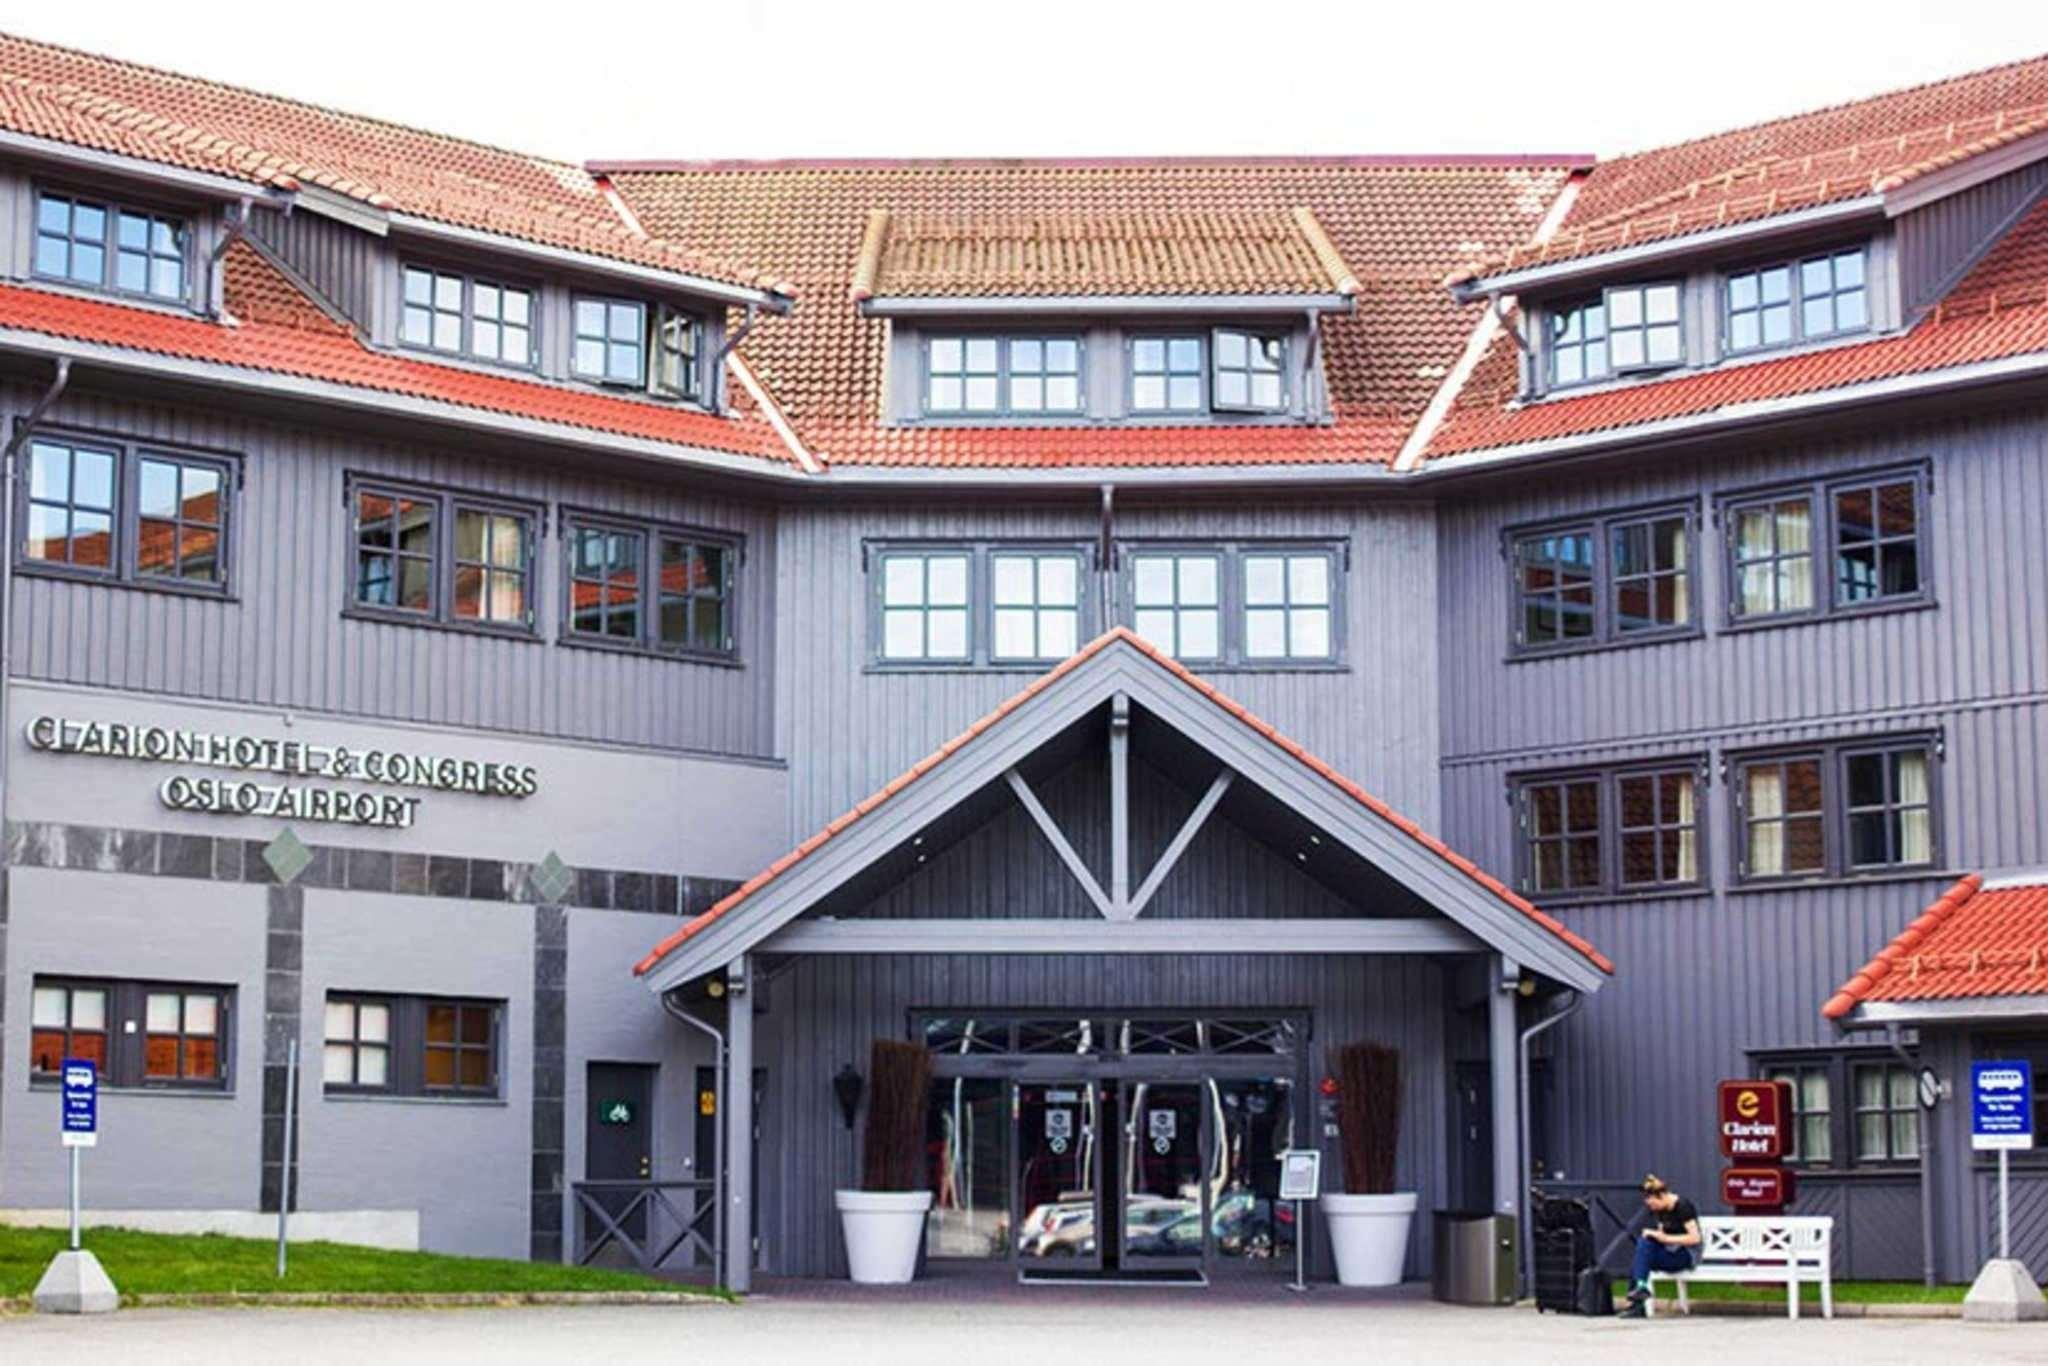 Clarion Hotel And Congress Oslo Airport